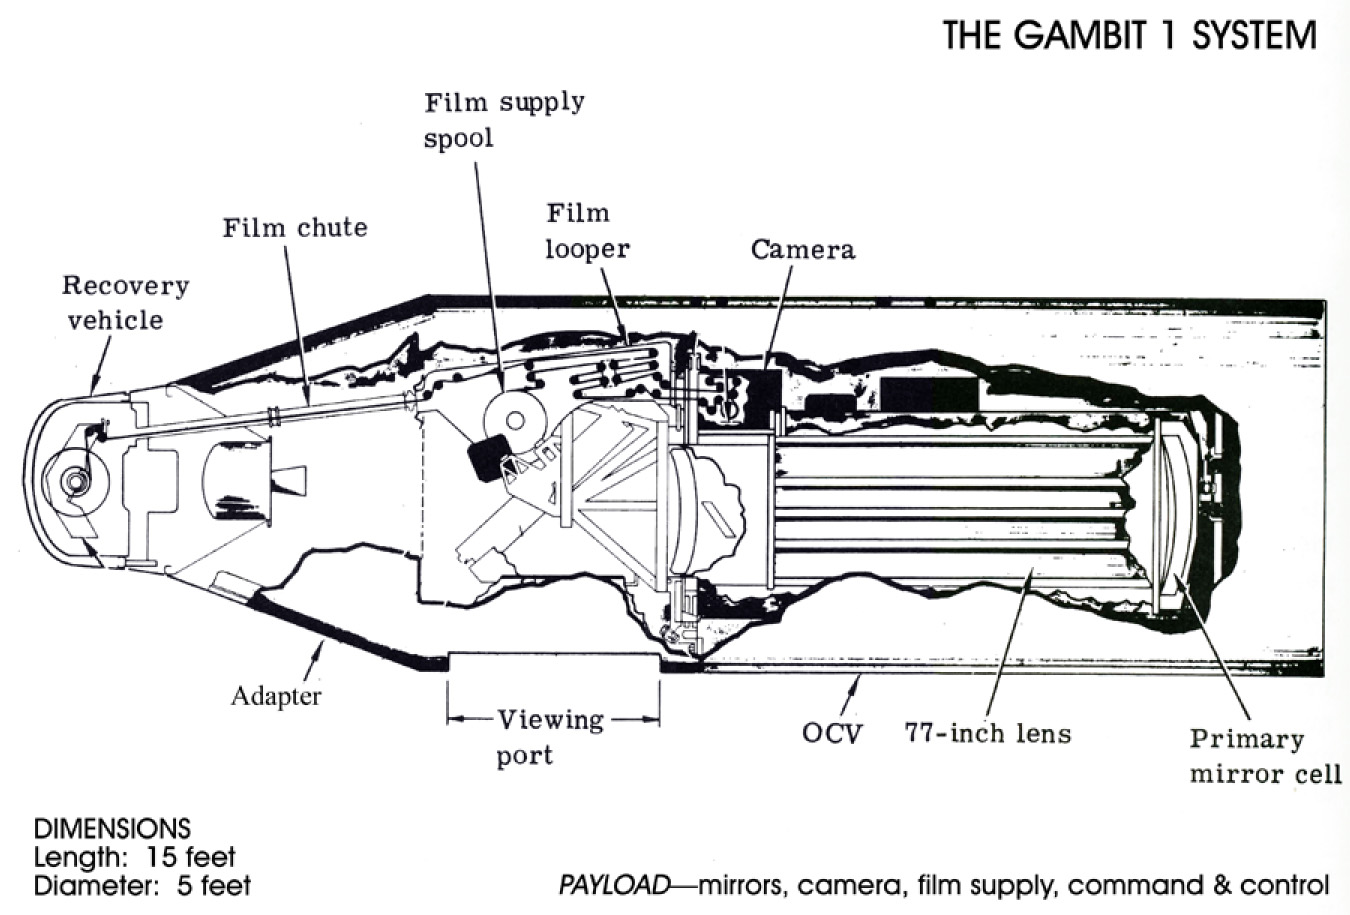 GAMBIT 1 Spy Satellite Design